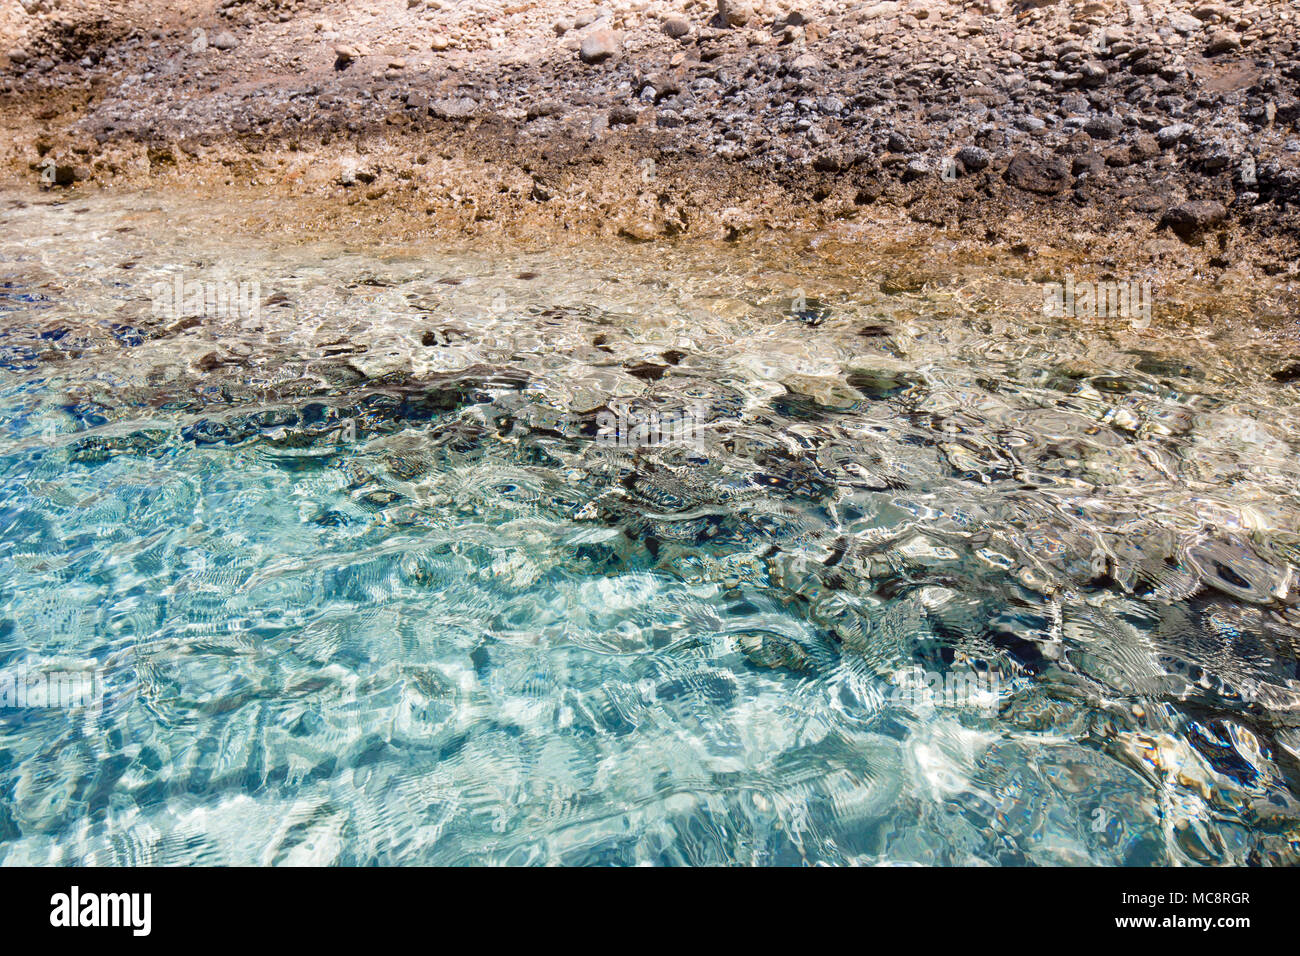 Cristal clear turquoise water and the sea urchins on the bottom, coast of Crete, Greece. wave pattern, wind ripples the sea surface. Sun reflections. - Stock Image